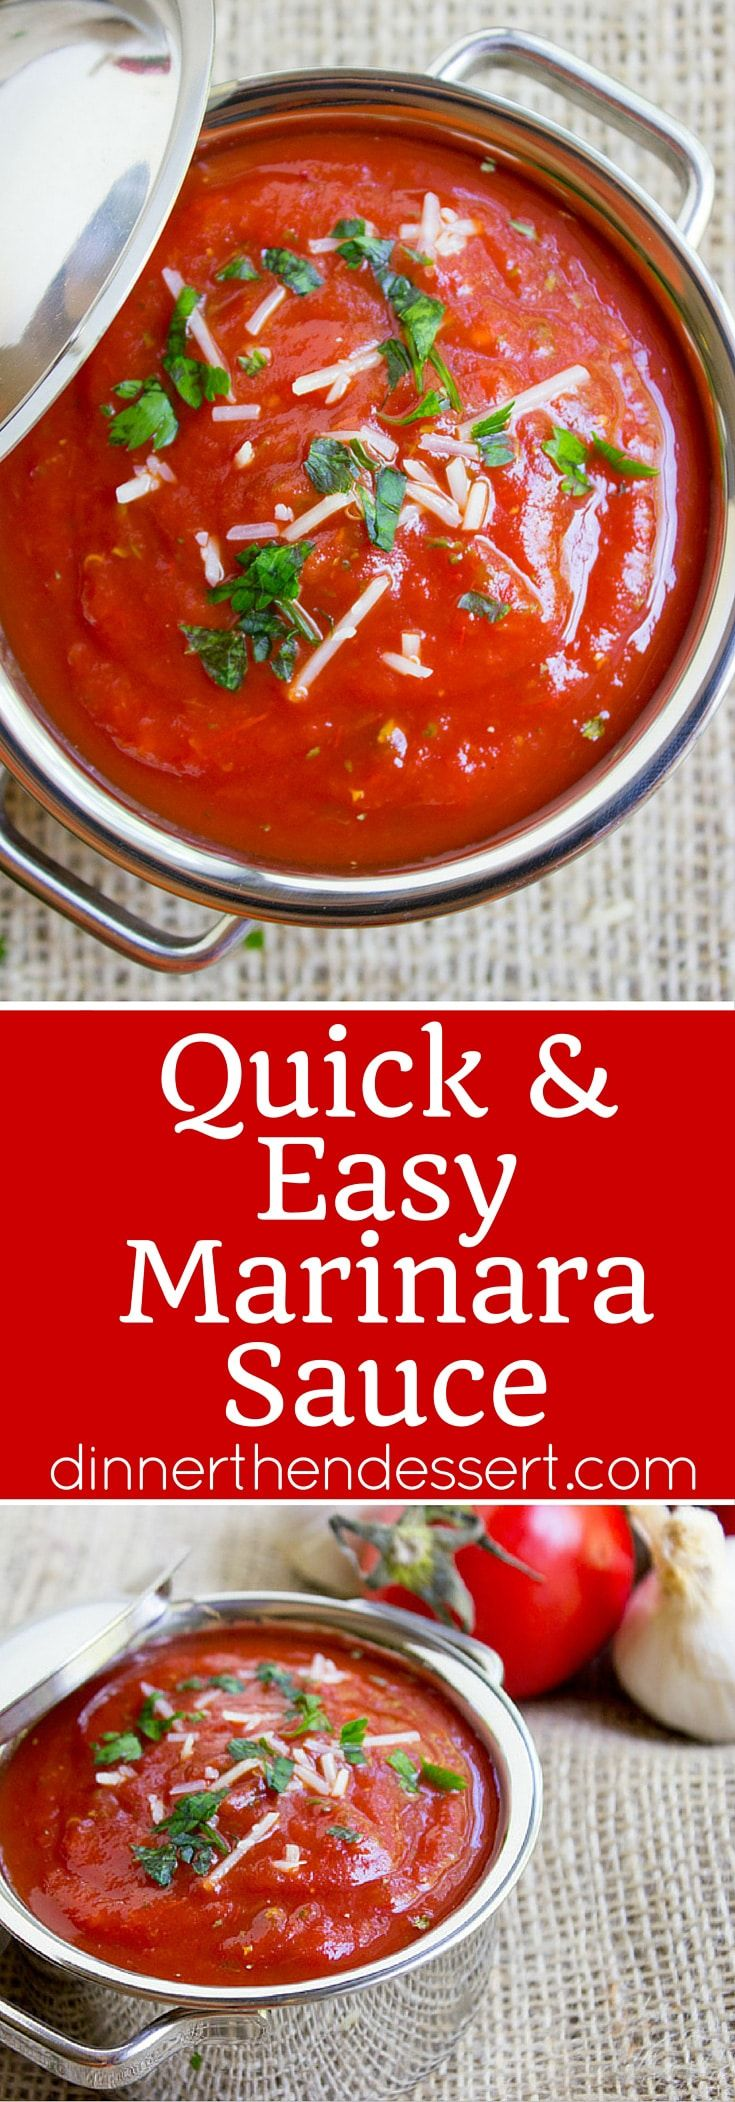 Quick and Easy Marinara Sauce, perfect for your favorite Italian meal. Done in as little as 15 minutes but perfect in 40. Five different add in options for more flavors!